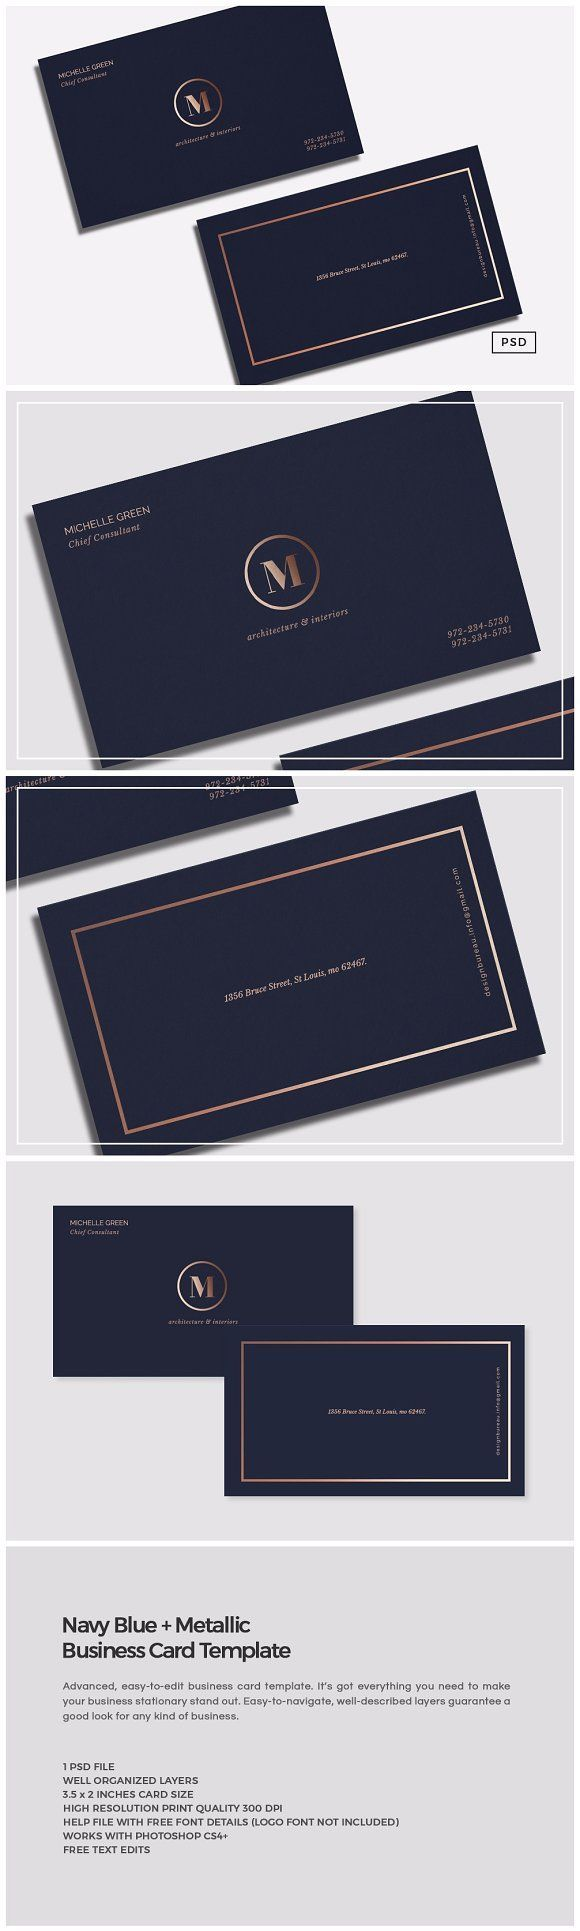 Navy blue metallic business card by the design label on navy blue metallic business card by the design label on creativemarket professional business cards pinterest business cards business and unique reheart Gallery